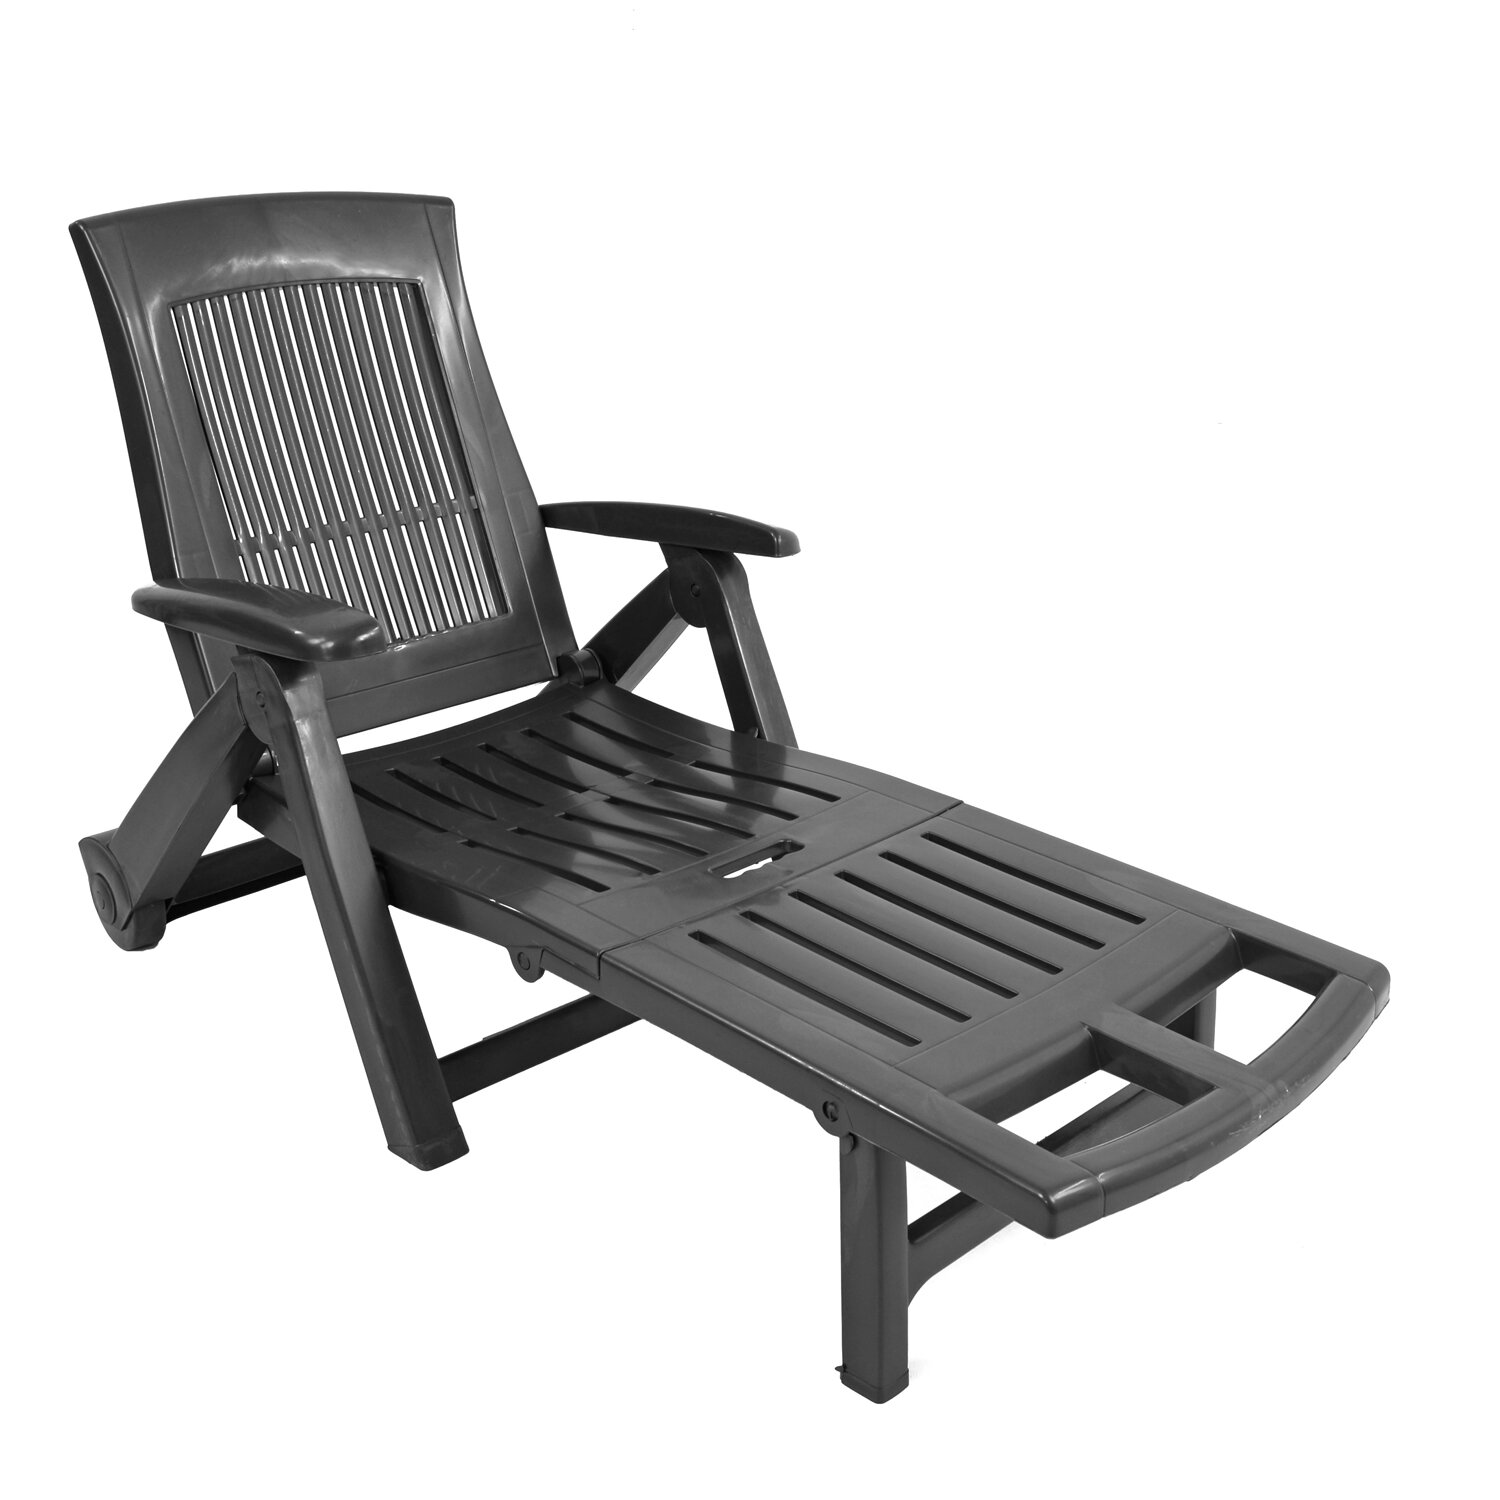 Astounding Colin Reclining Sun Lounger Caraccident5 Cool Chair Designs And Ideas Caraccident5Info